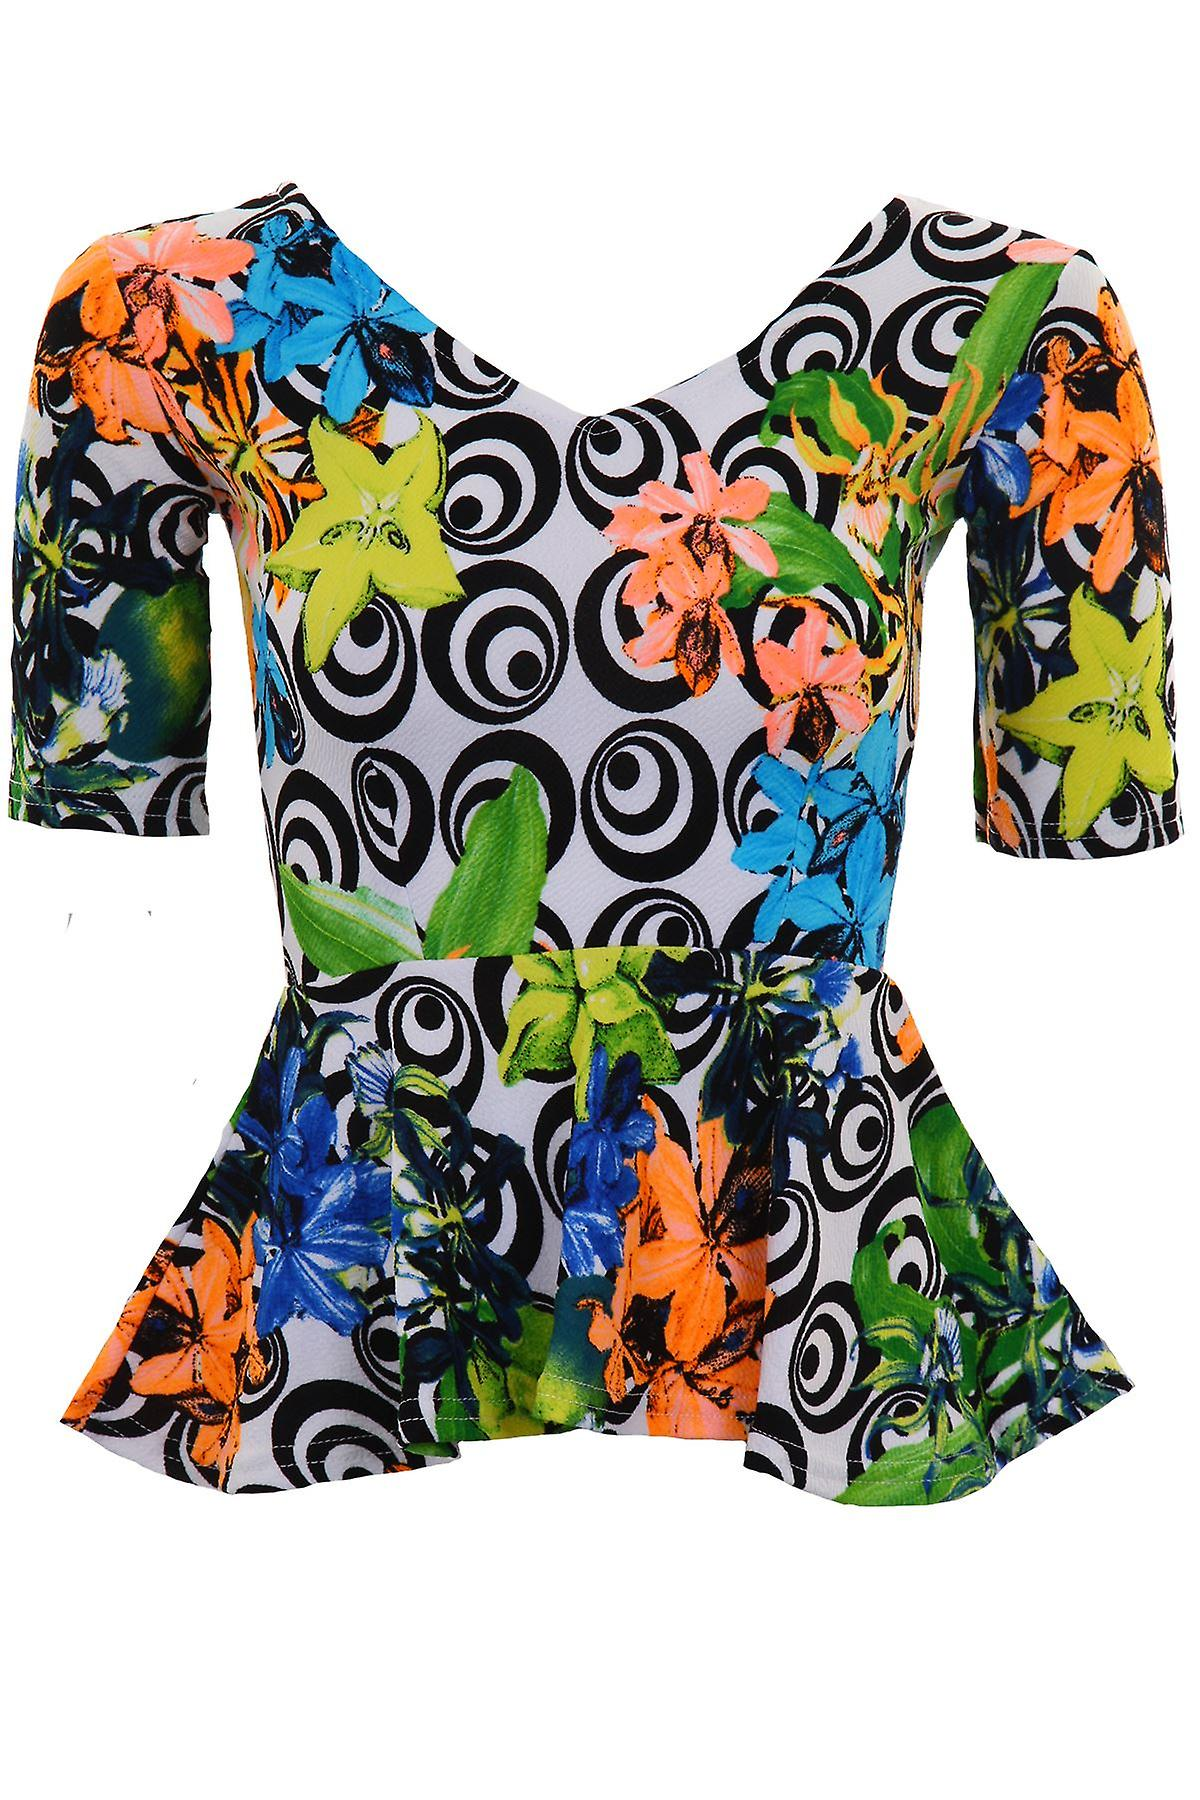 Ladies Short Sleeve V Neck Swirl Floral Print Women's Textured Peplum Frill Top